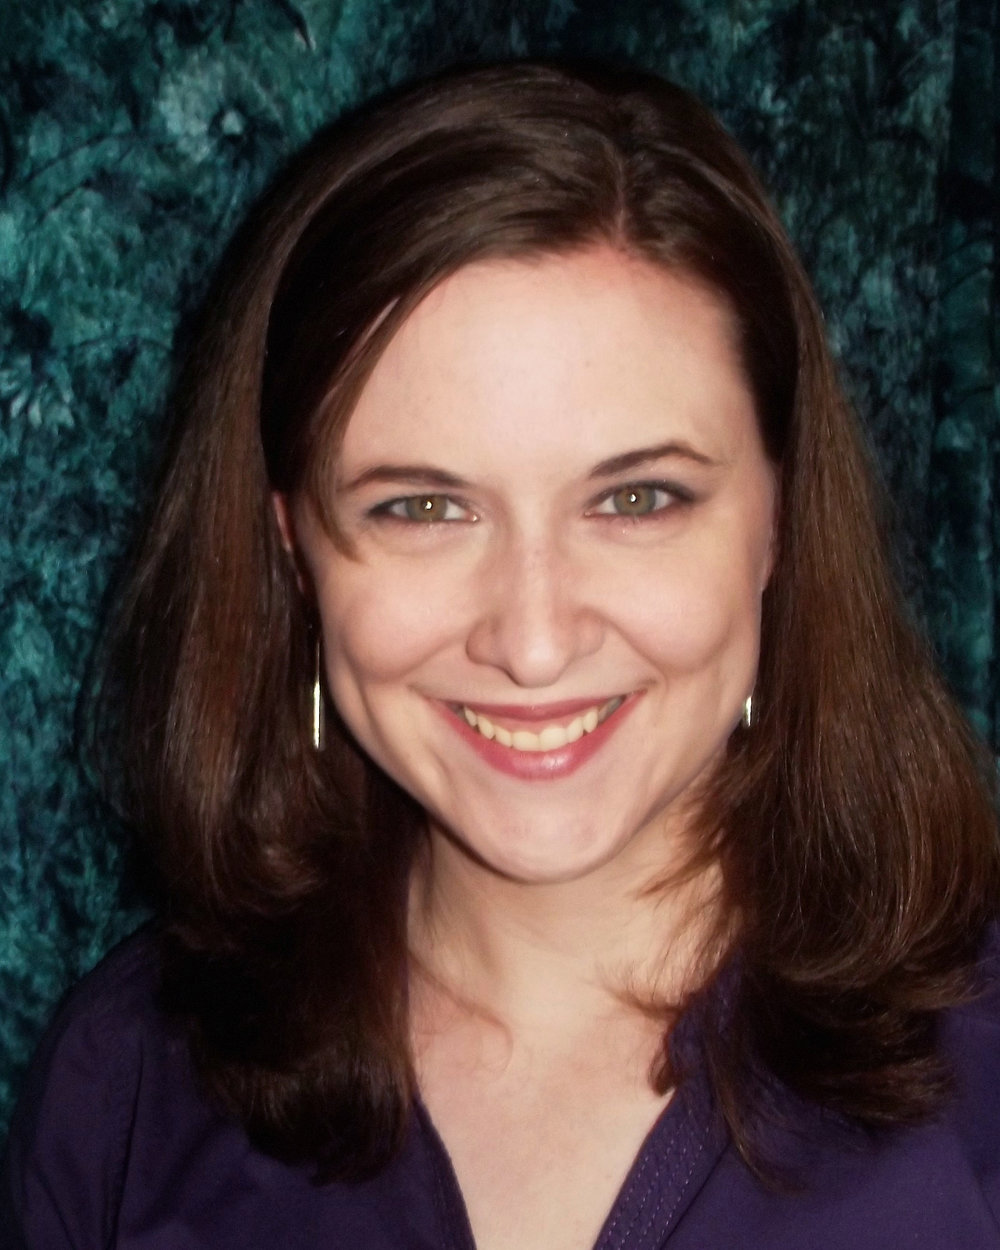 Angie Settlemire - Angie is director of both Outta Theatre and the Grove City Art & Theatre Camp. This is her 5th year as a camp teacher. See full bio at top of page.